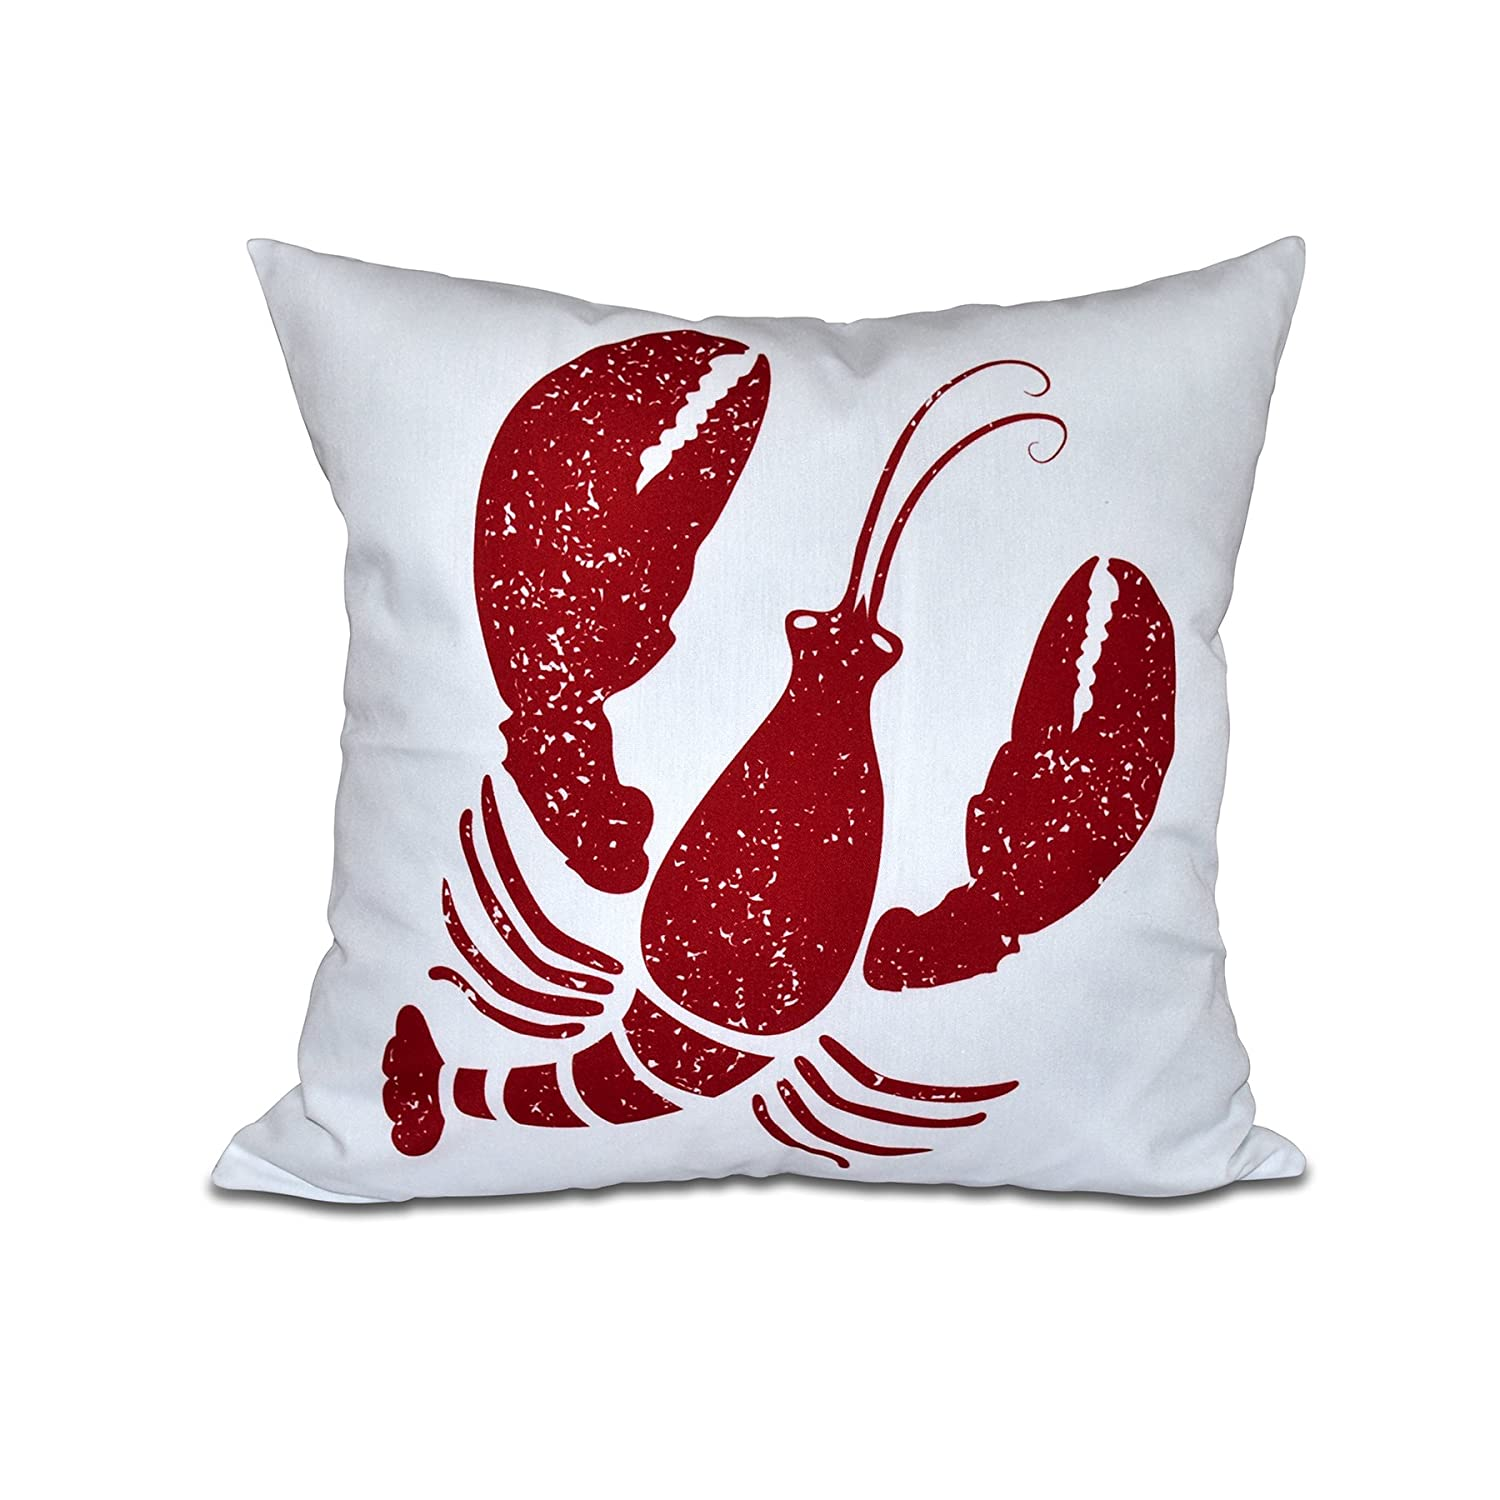 E by design O5PAN404BL14OR13-18 18 x 18 Lobster Animal Print Pillow Navy Blue